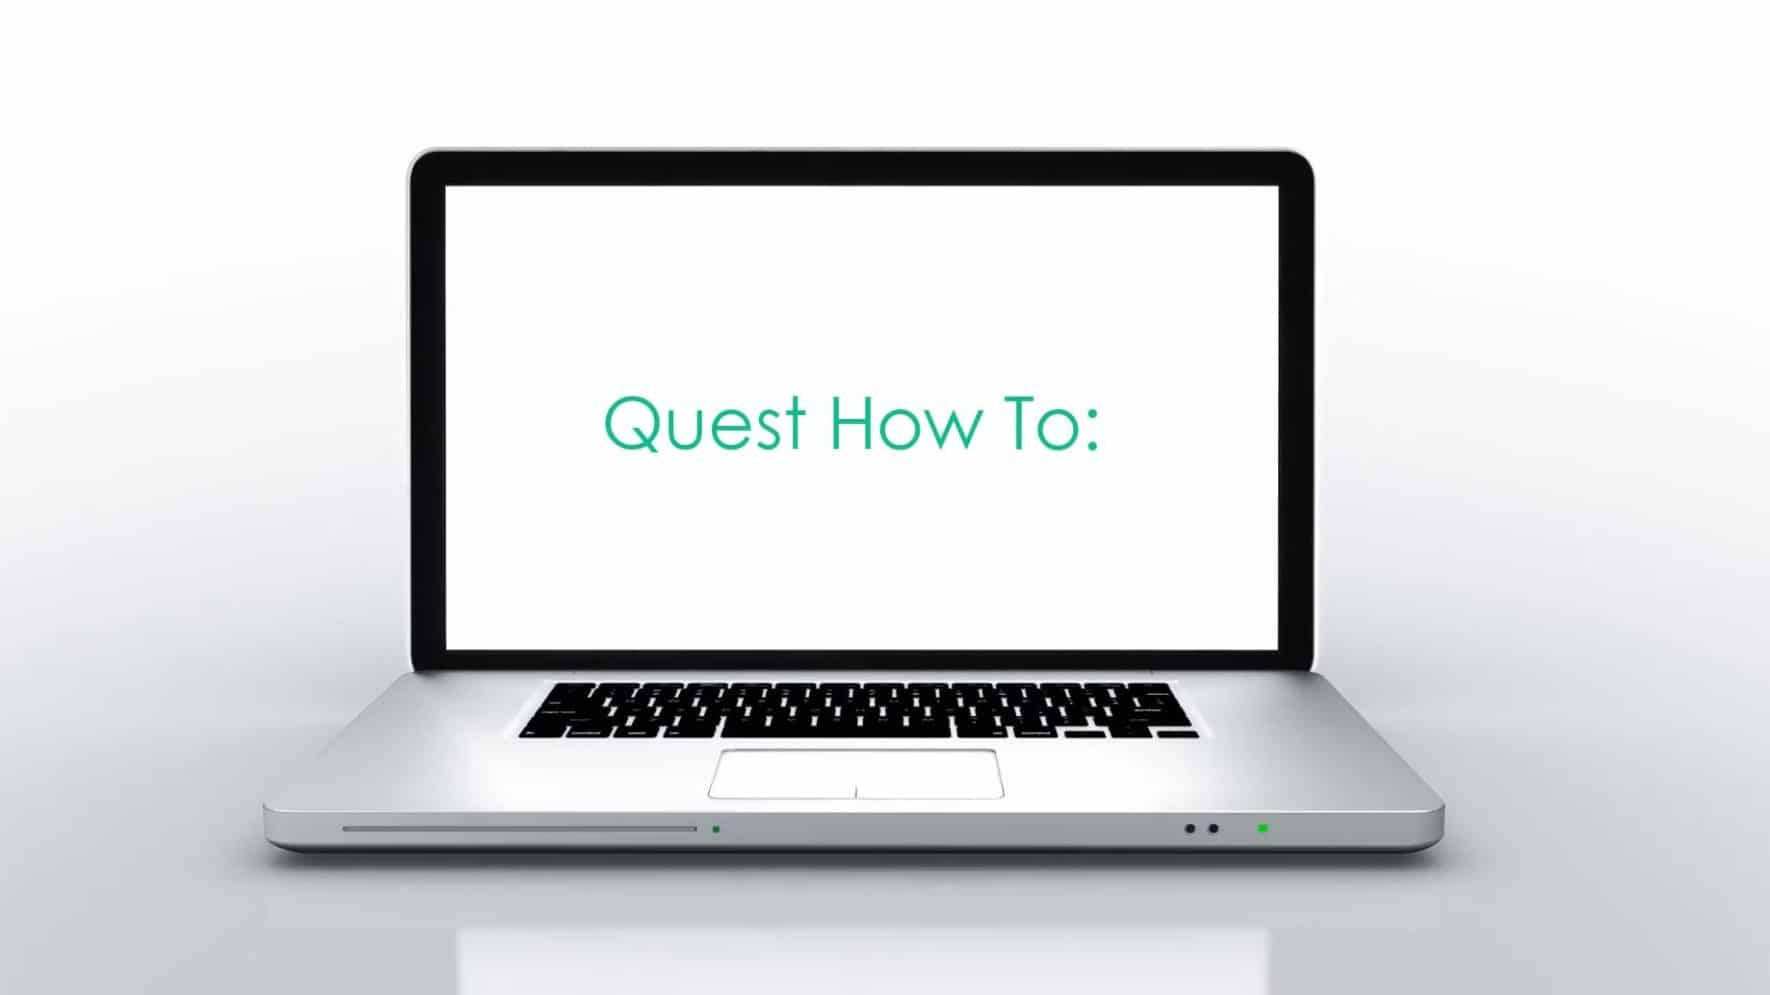 Quest-How-To